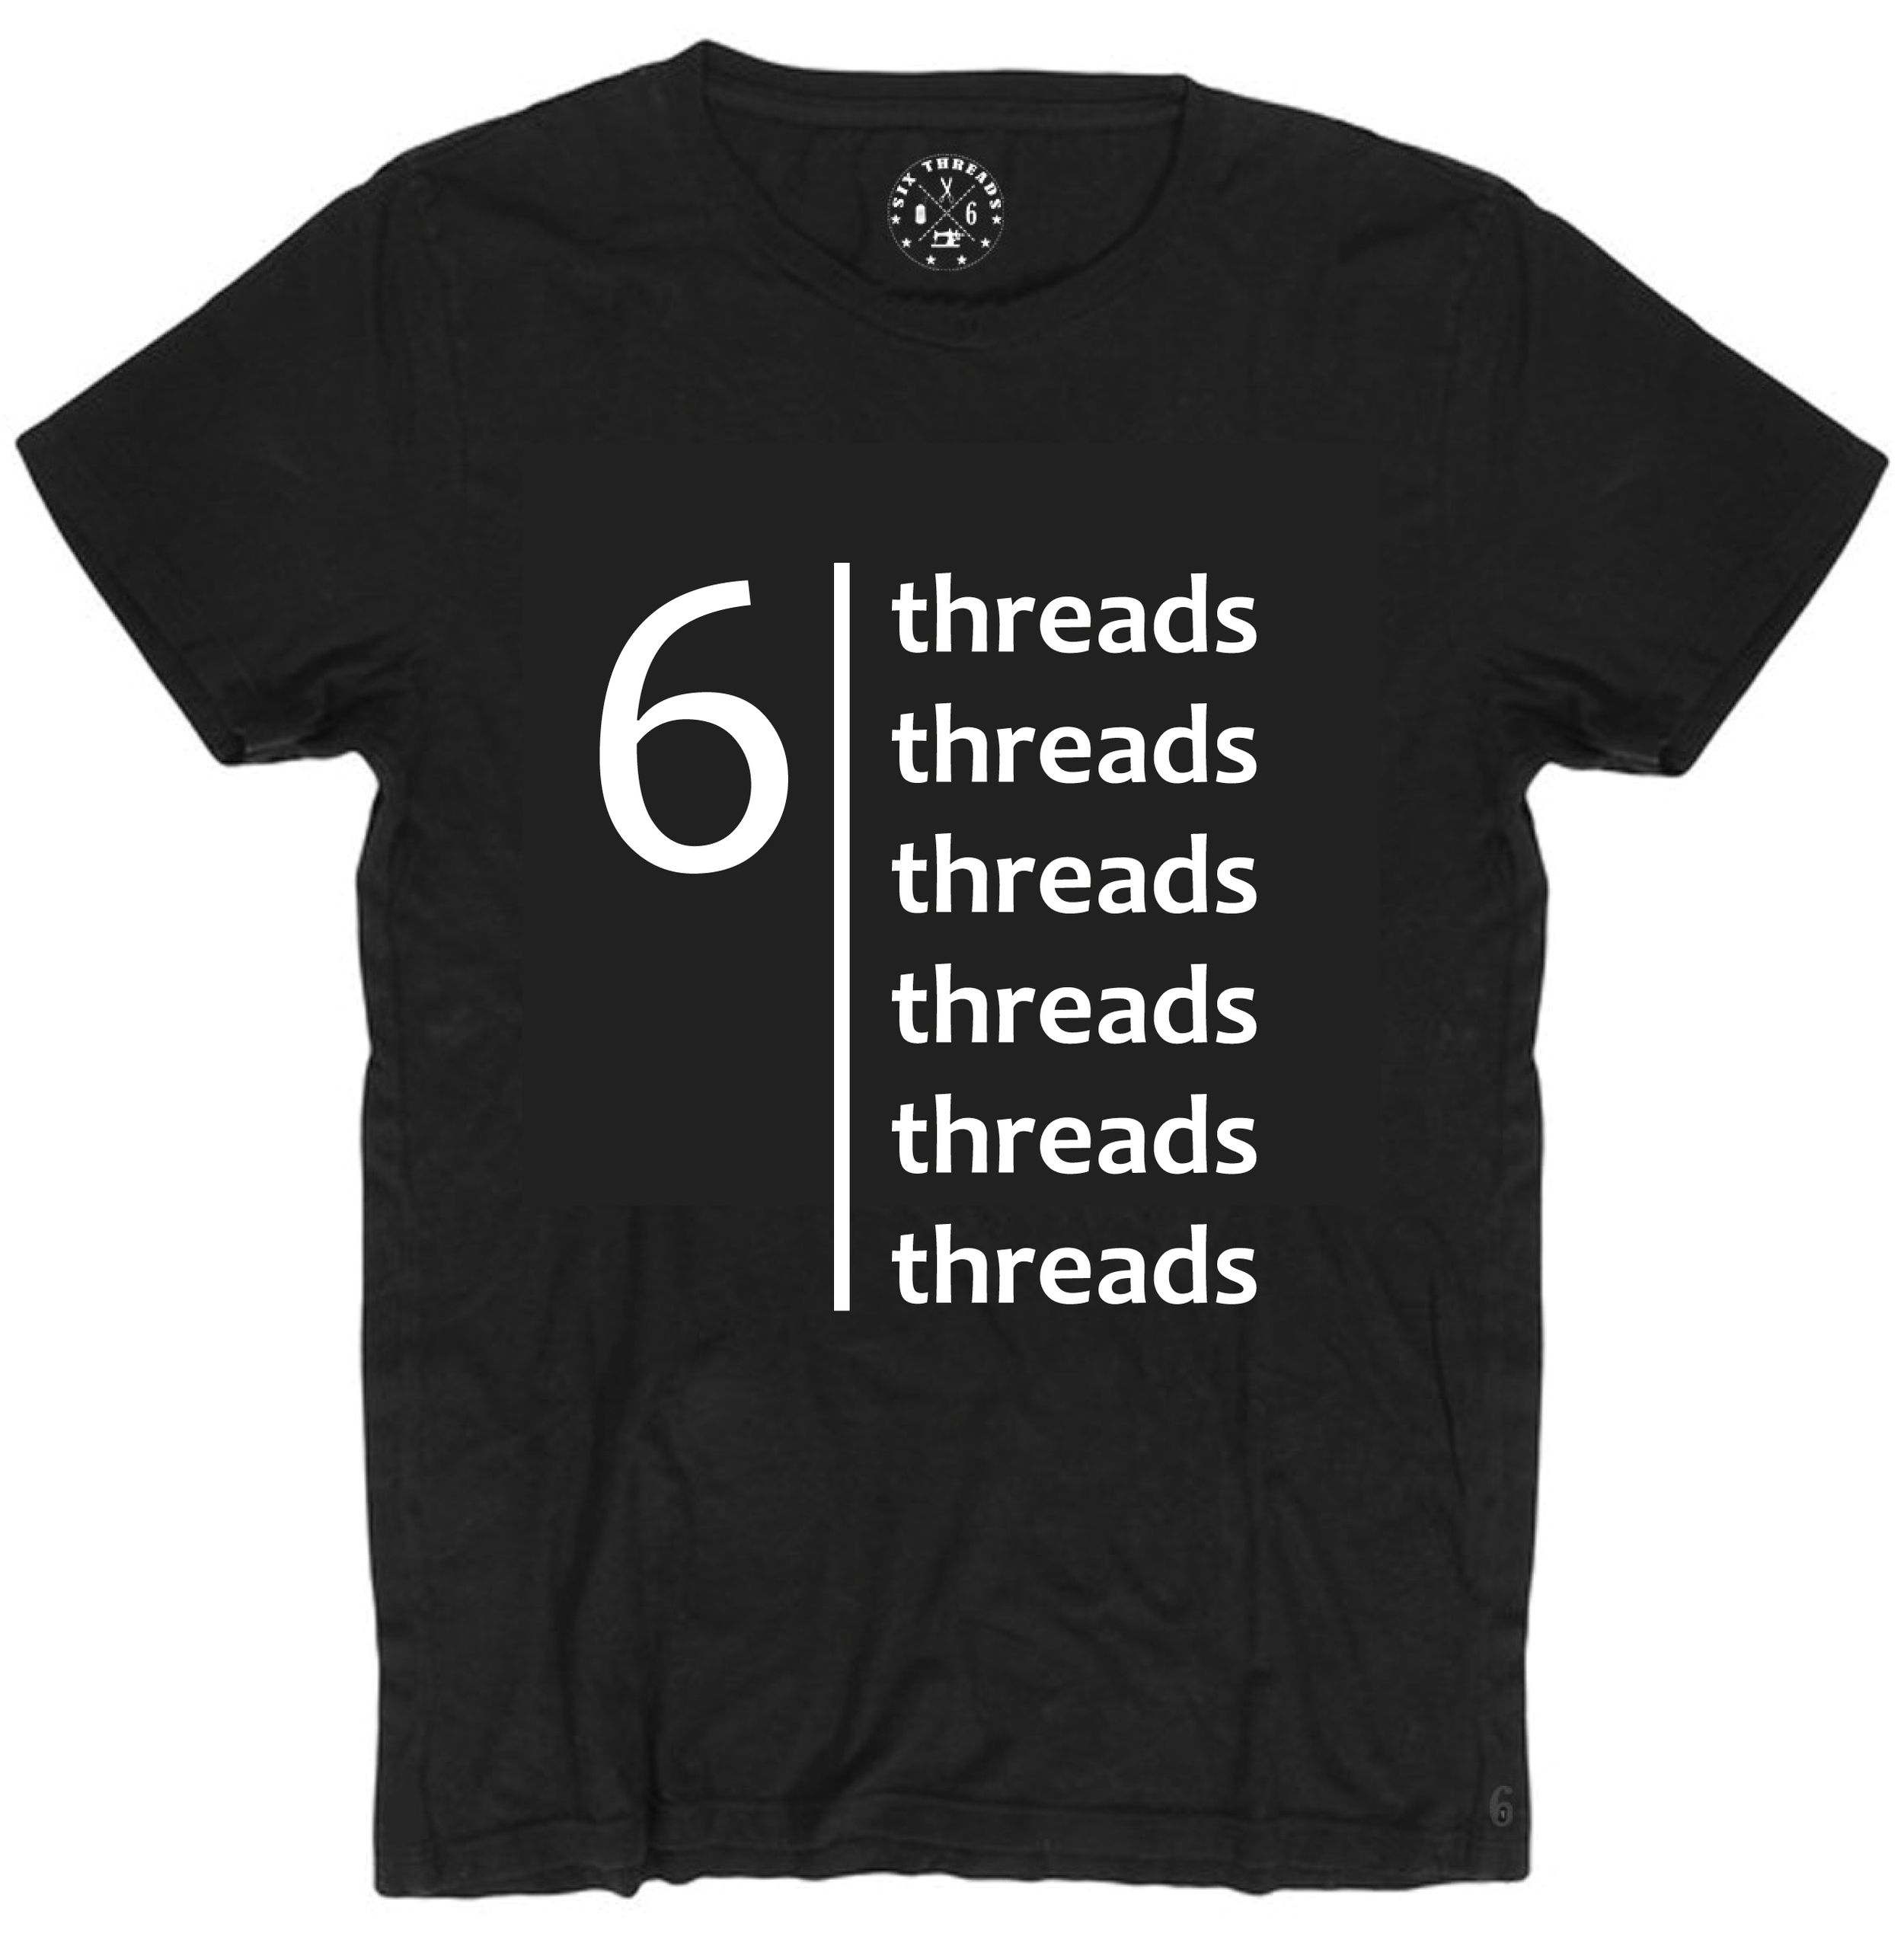 Apparel design for Six Threads